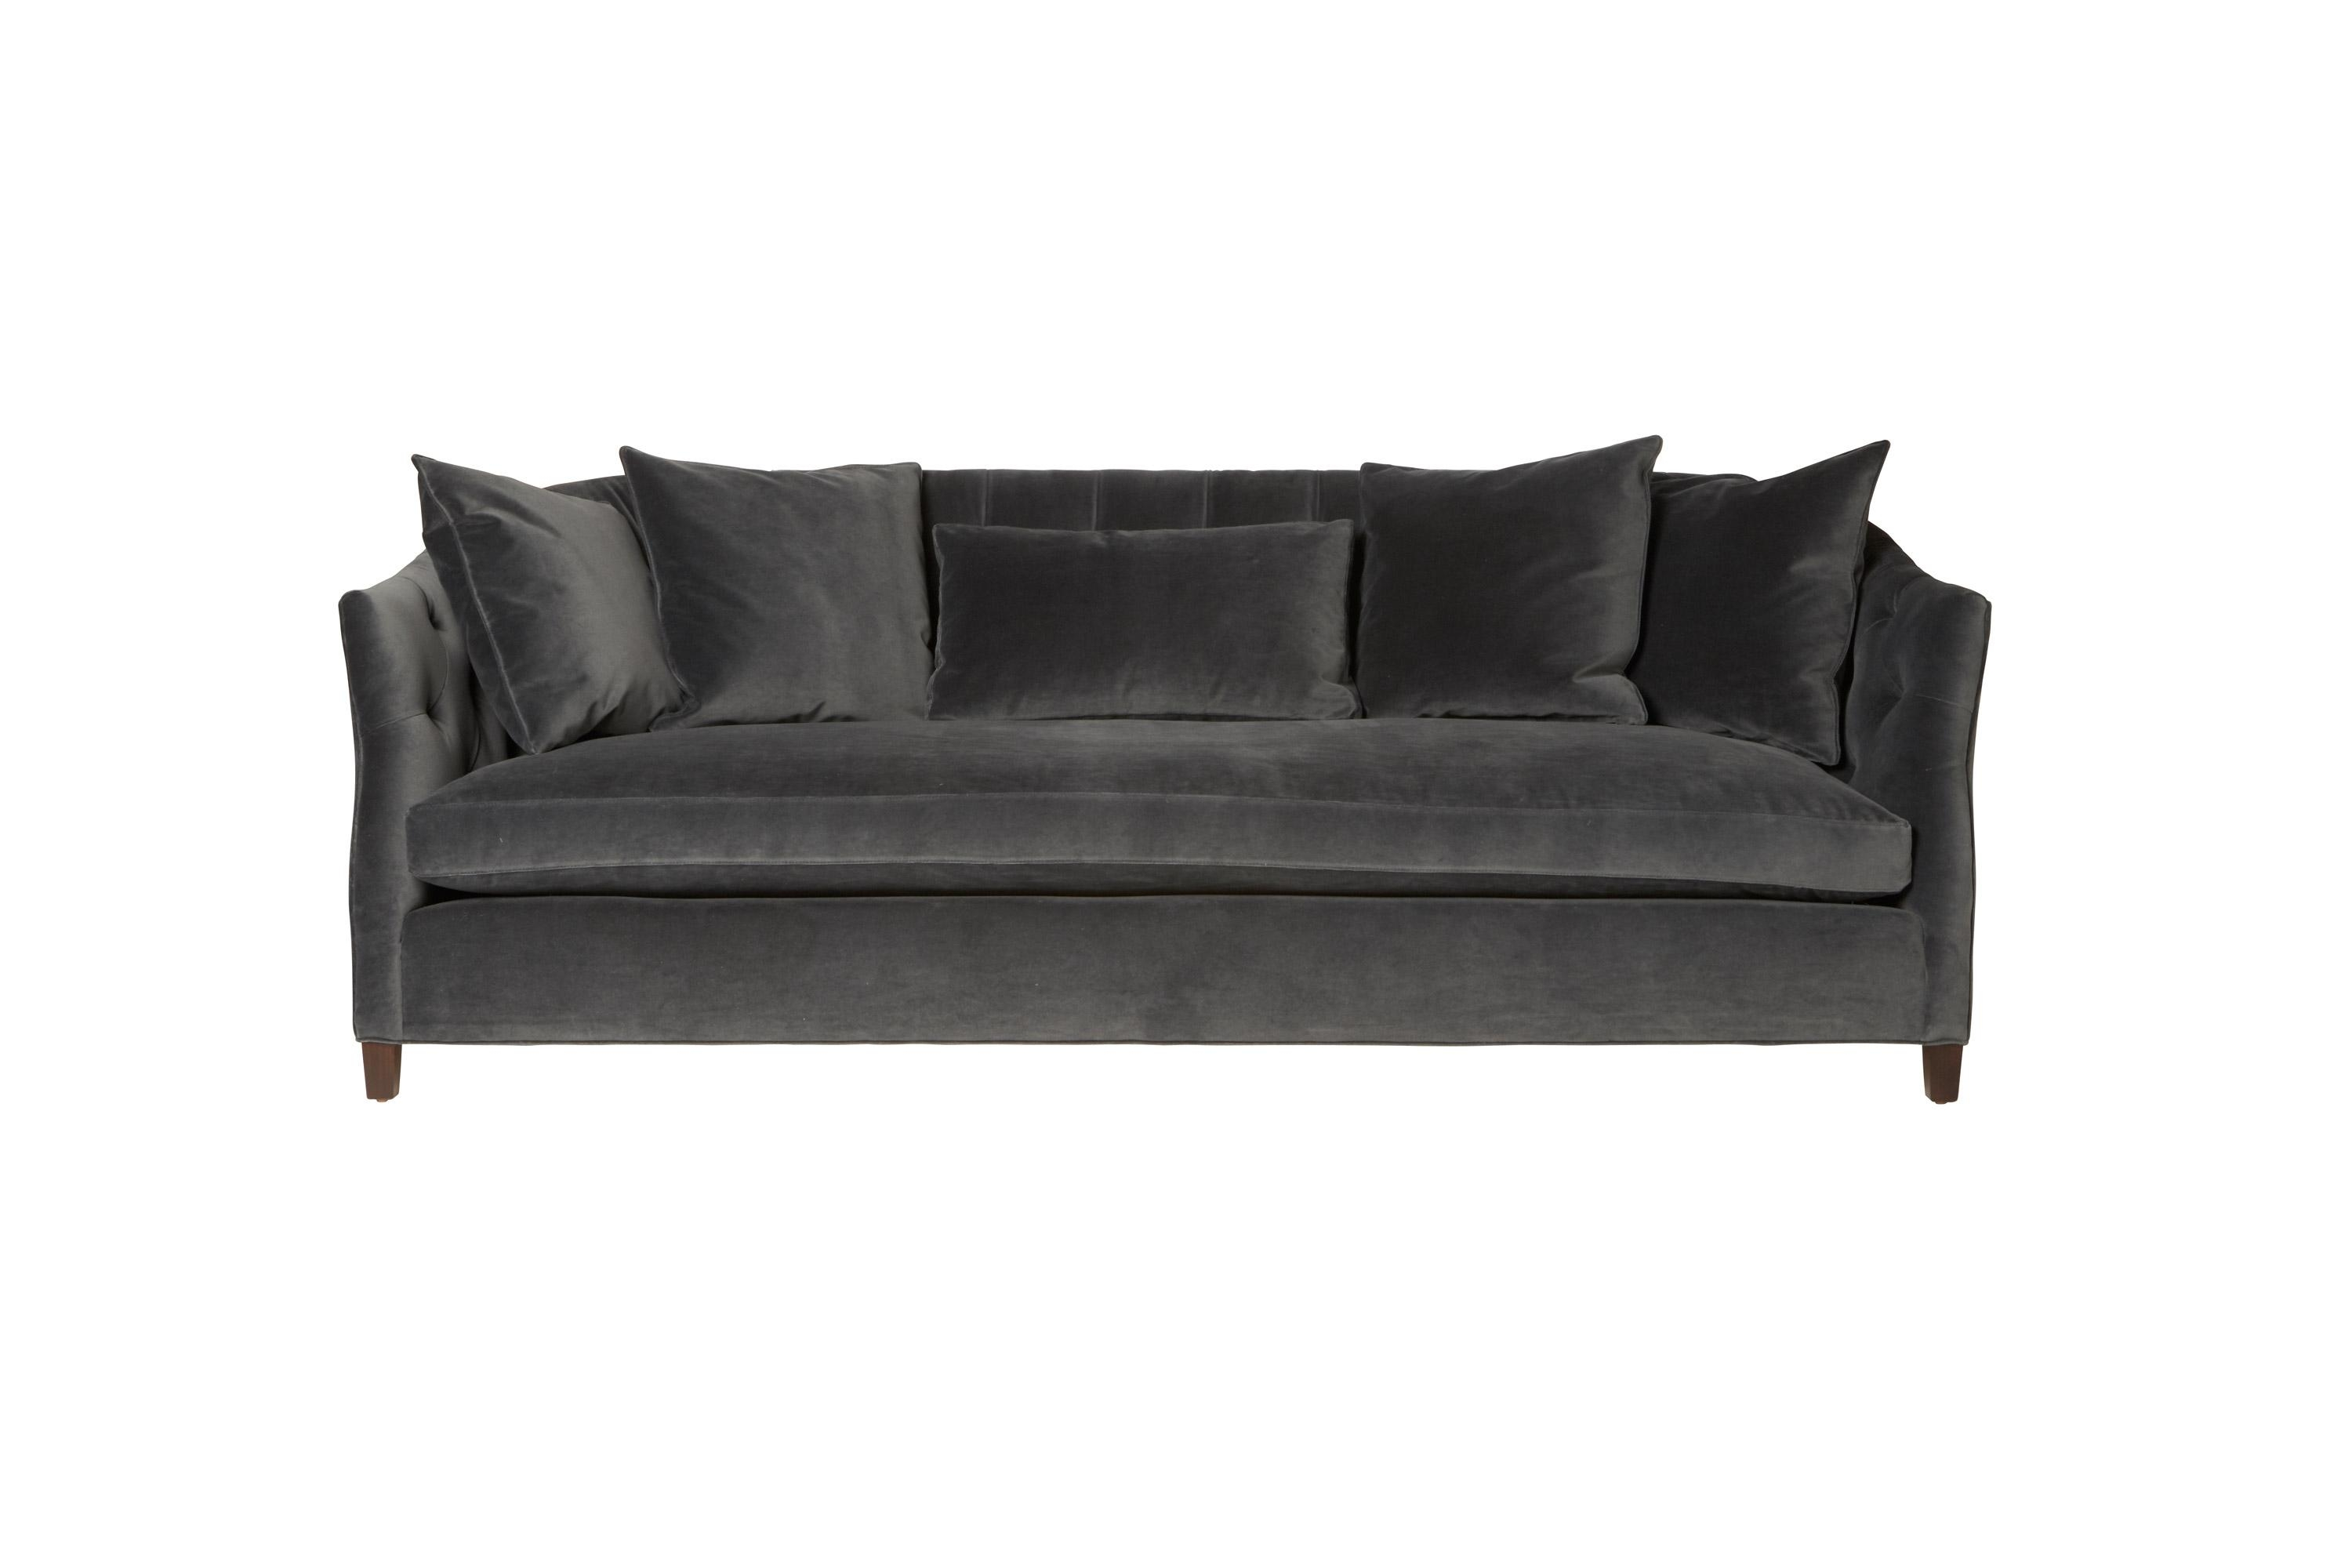 cisco brothers sofa reviews high density foam bed 20 best collection of sofas ideas